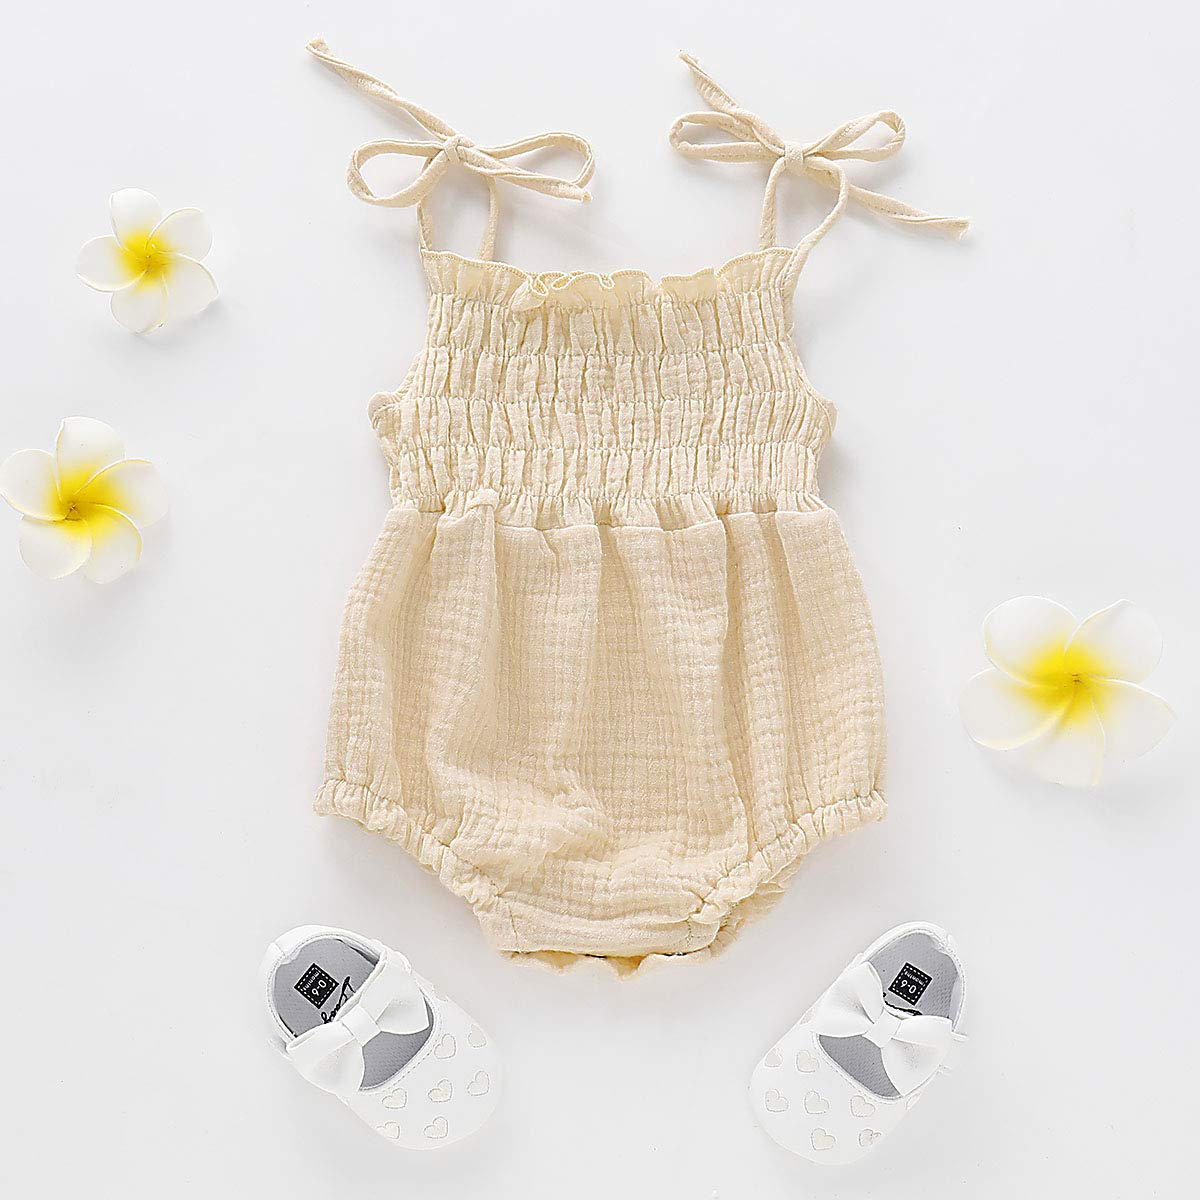 Headband ZOELNIC Baby Girls Sleeveless Romper Toddler Girl Floral Bow Halter